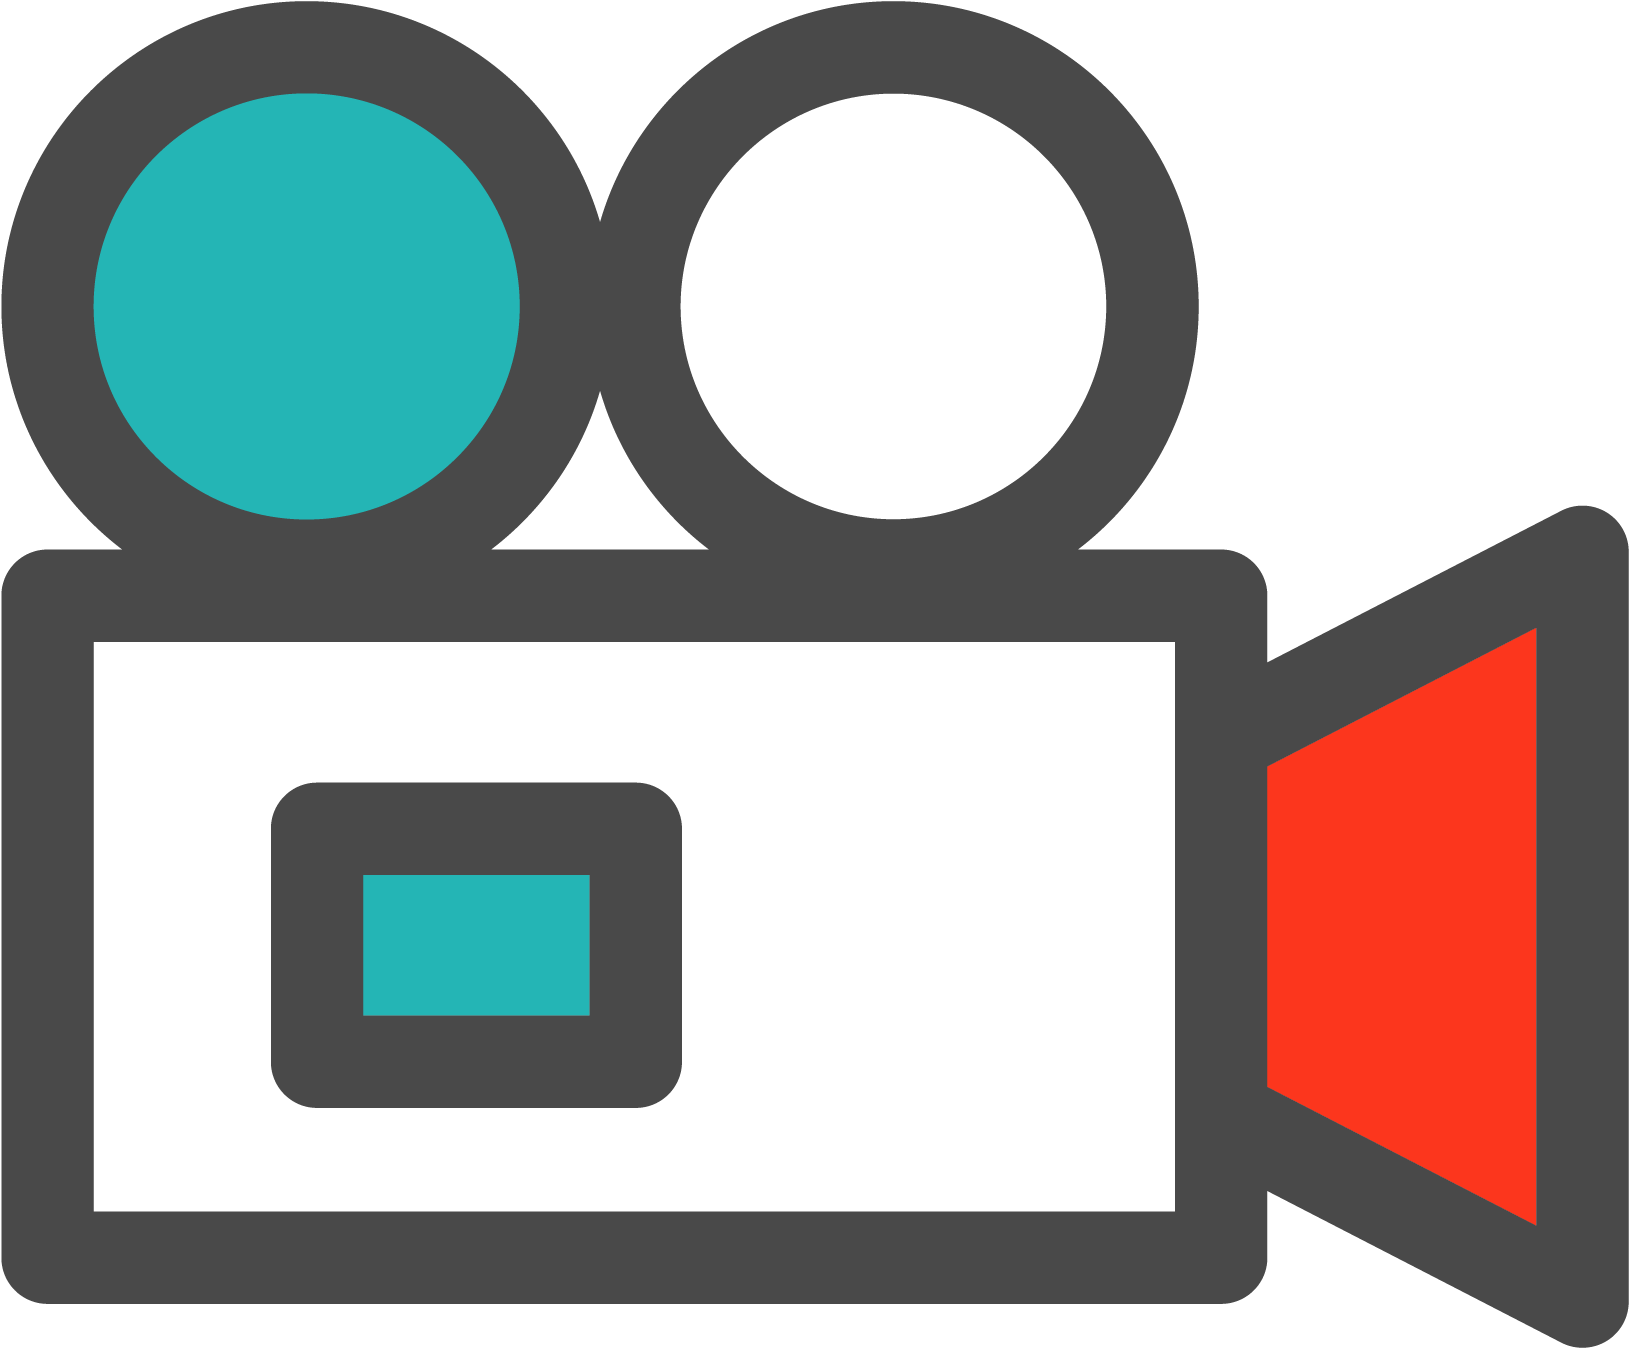 Video icon vector clipart jpg royalty free library Video Cameras Computer Icons Film - Camera Video Vector Png ... jpg royalty free library